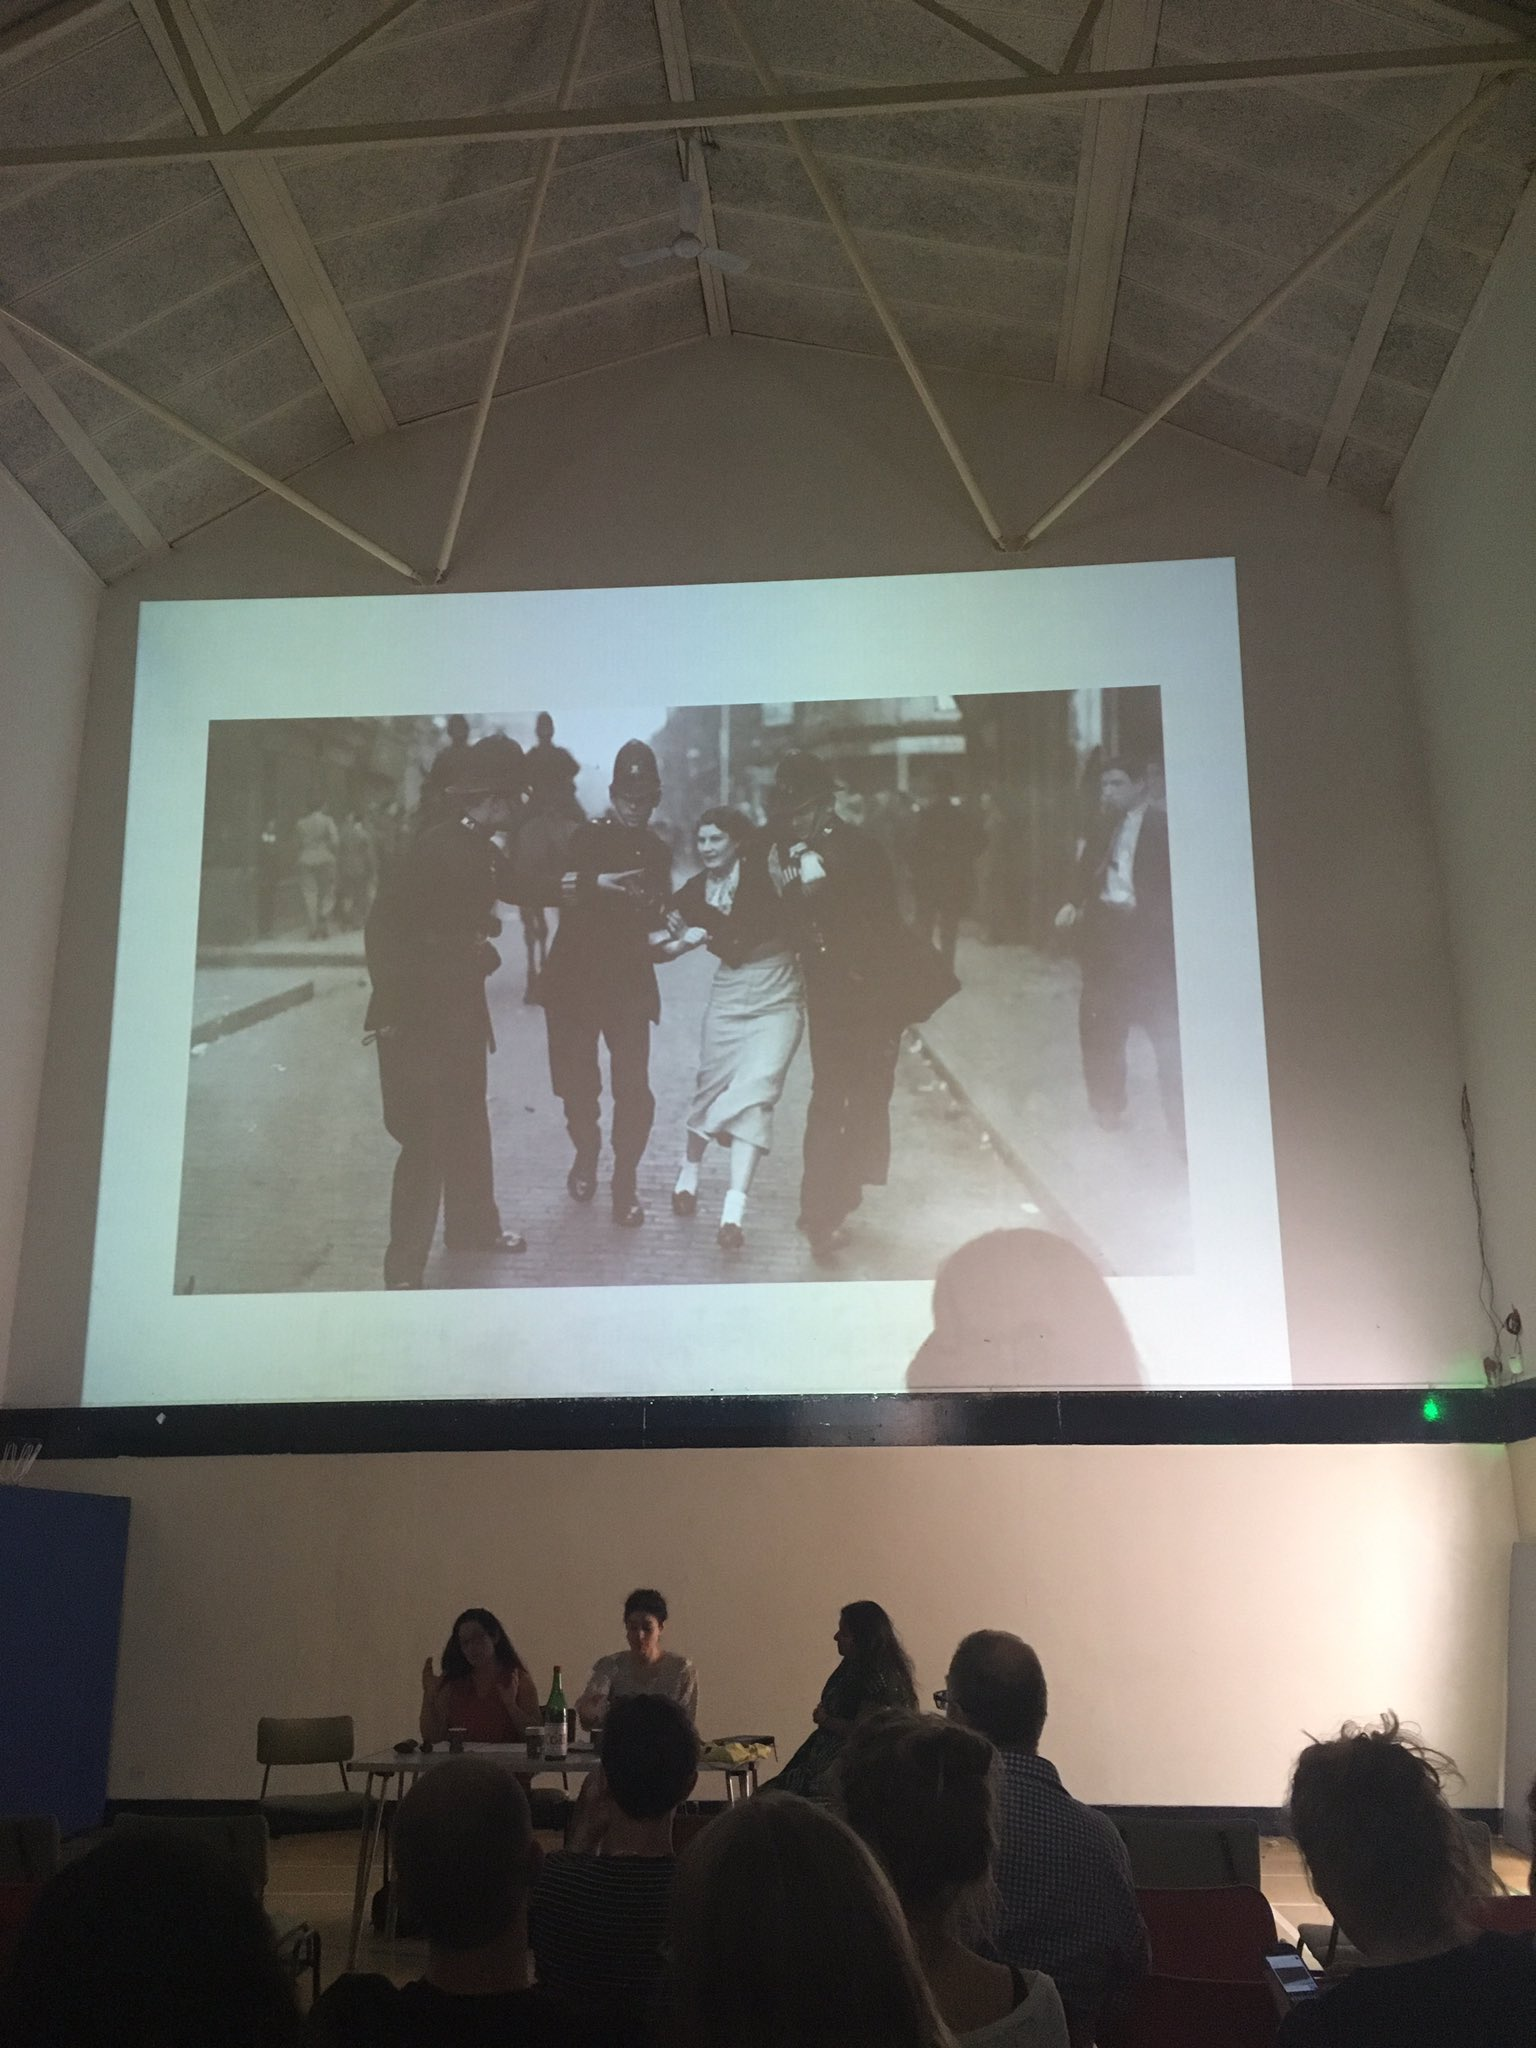 Listening to the wonderful @LondonCurious talk about the The Battle of Cable Street @EEWomensMuseum @SistersUncut https://t.co/IEtzsOG9Fg